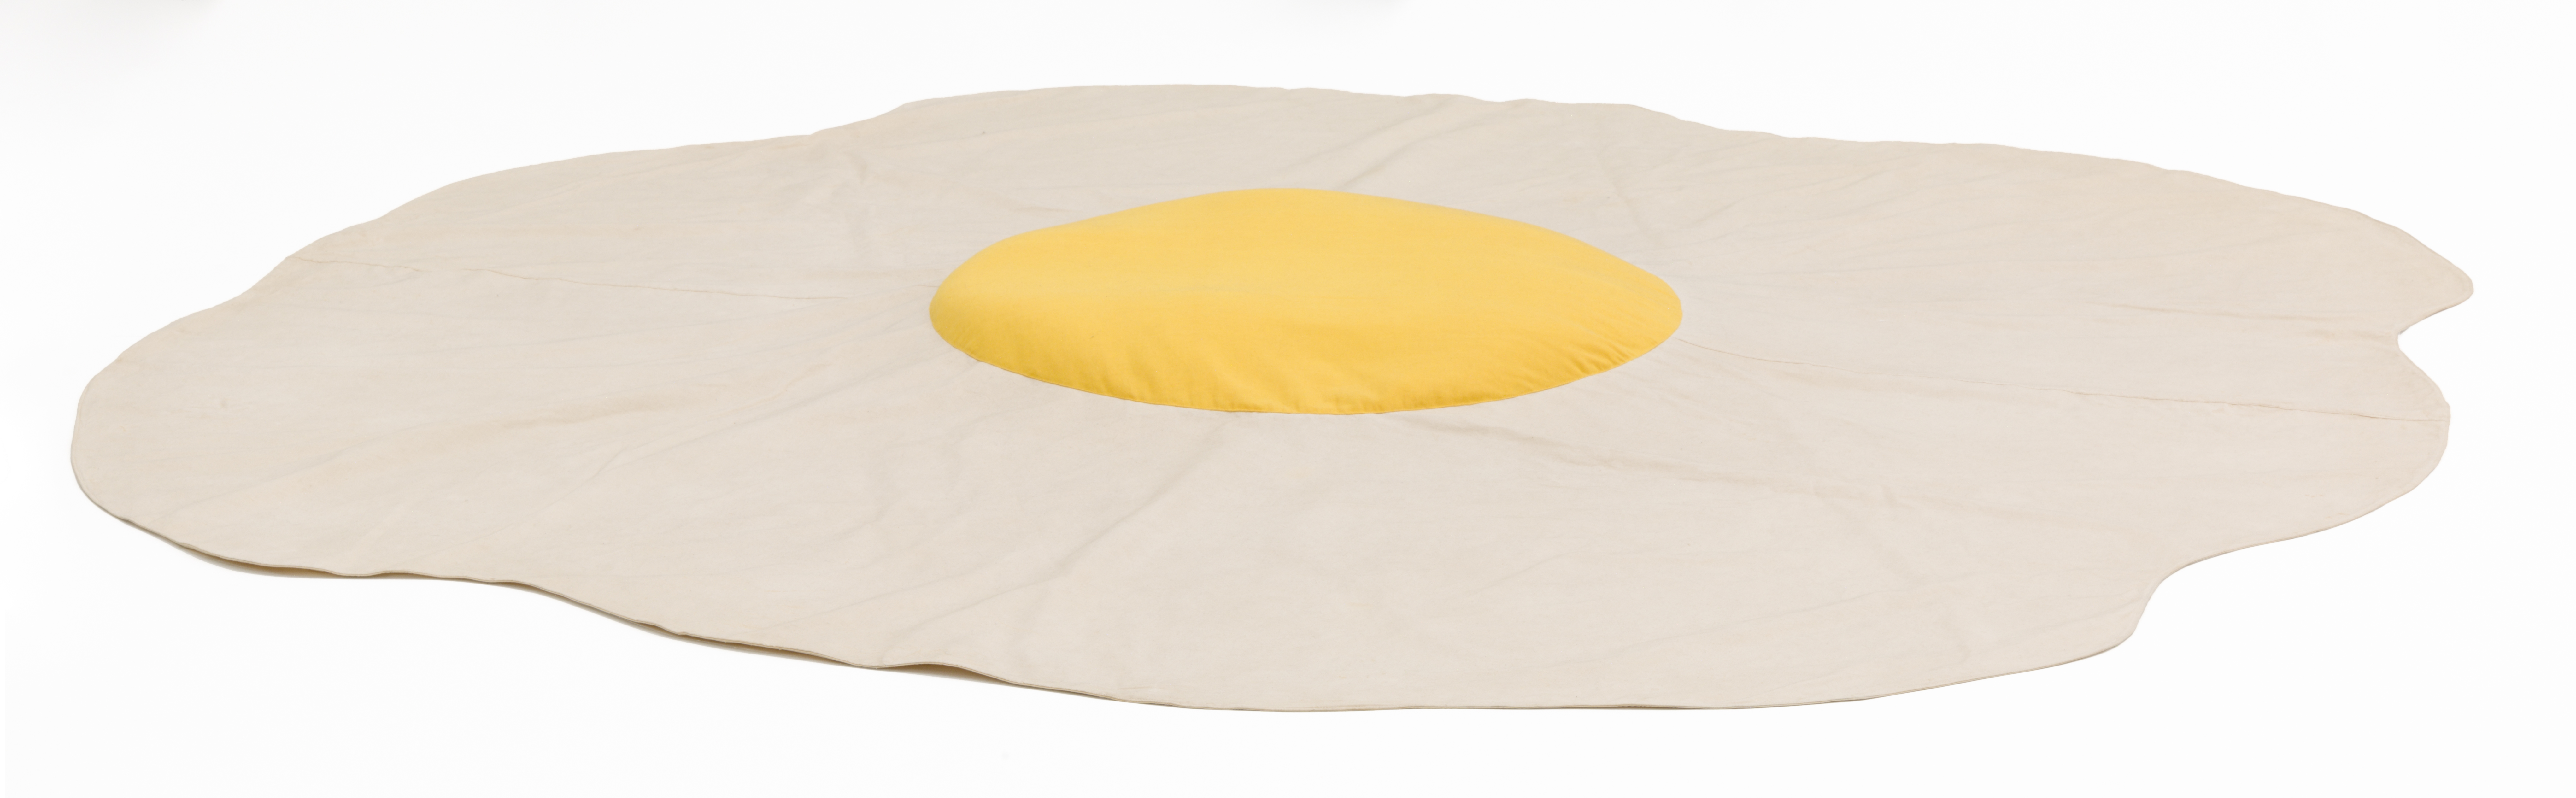 Claes Oldenburg, Sculpture in the Form of a Fried Egg, 1966/1971. Canvas, dyed cotton, and expanded polystyrene. Diameter, 309.9 cm. Collection Museum of Contemporary Art Chicago, gift of Anne and William J. Hokin, 1986.65. Photo: Nathan Keay, © MCA Chicago